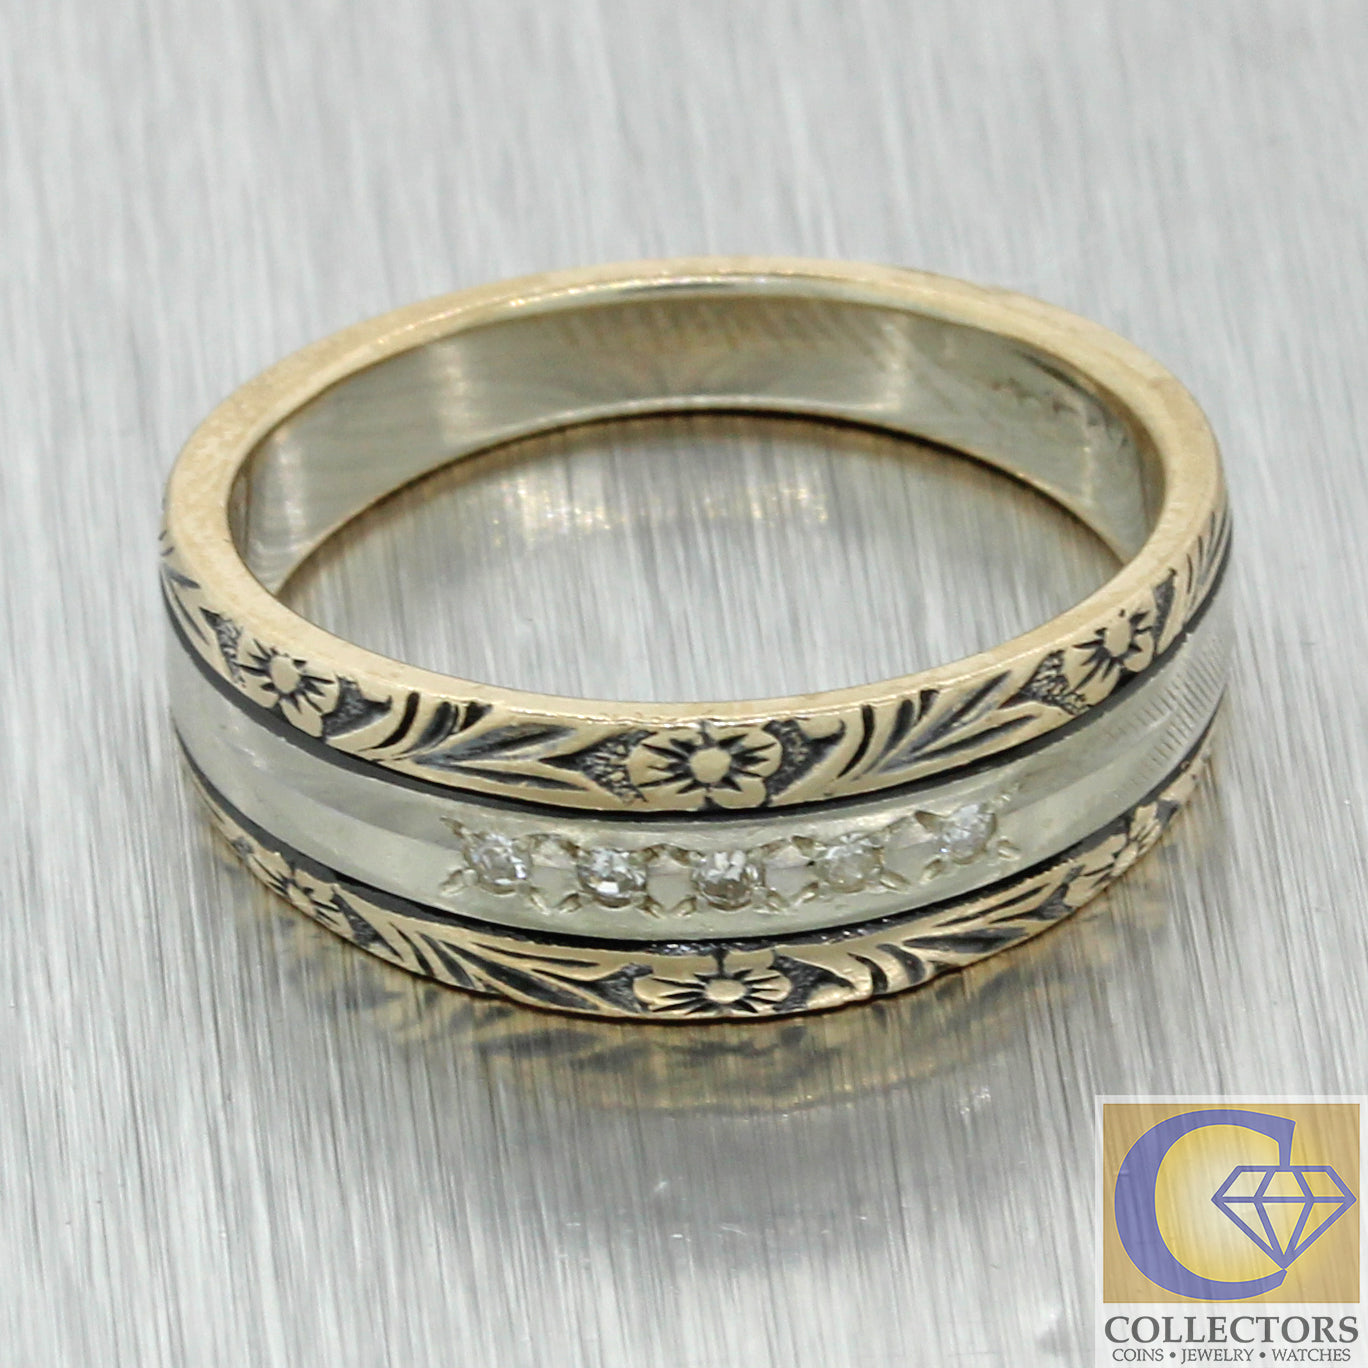 1930s Antique Art Deco 14k White Gold Diamond Enamel 7mm Wide Wedding Band Ring